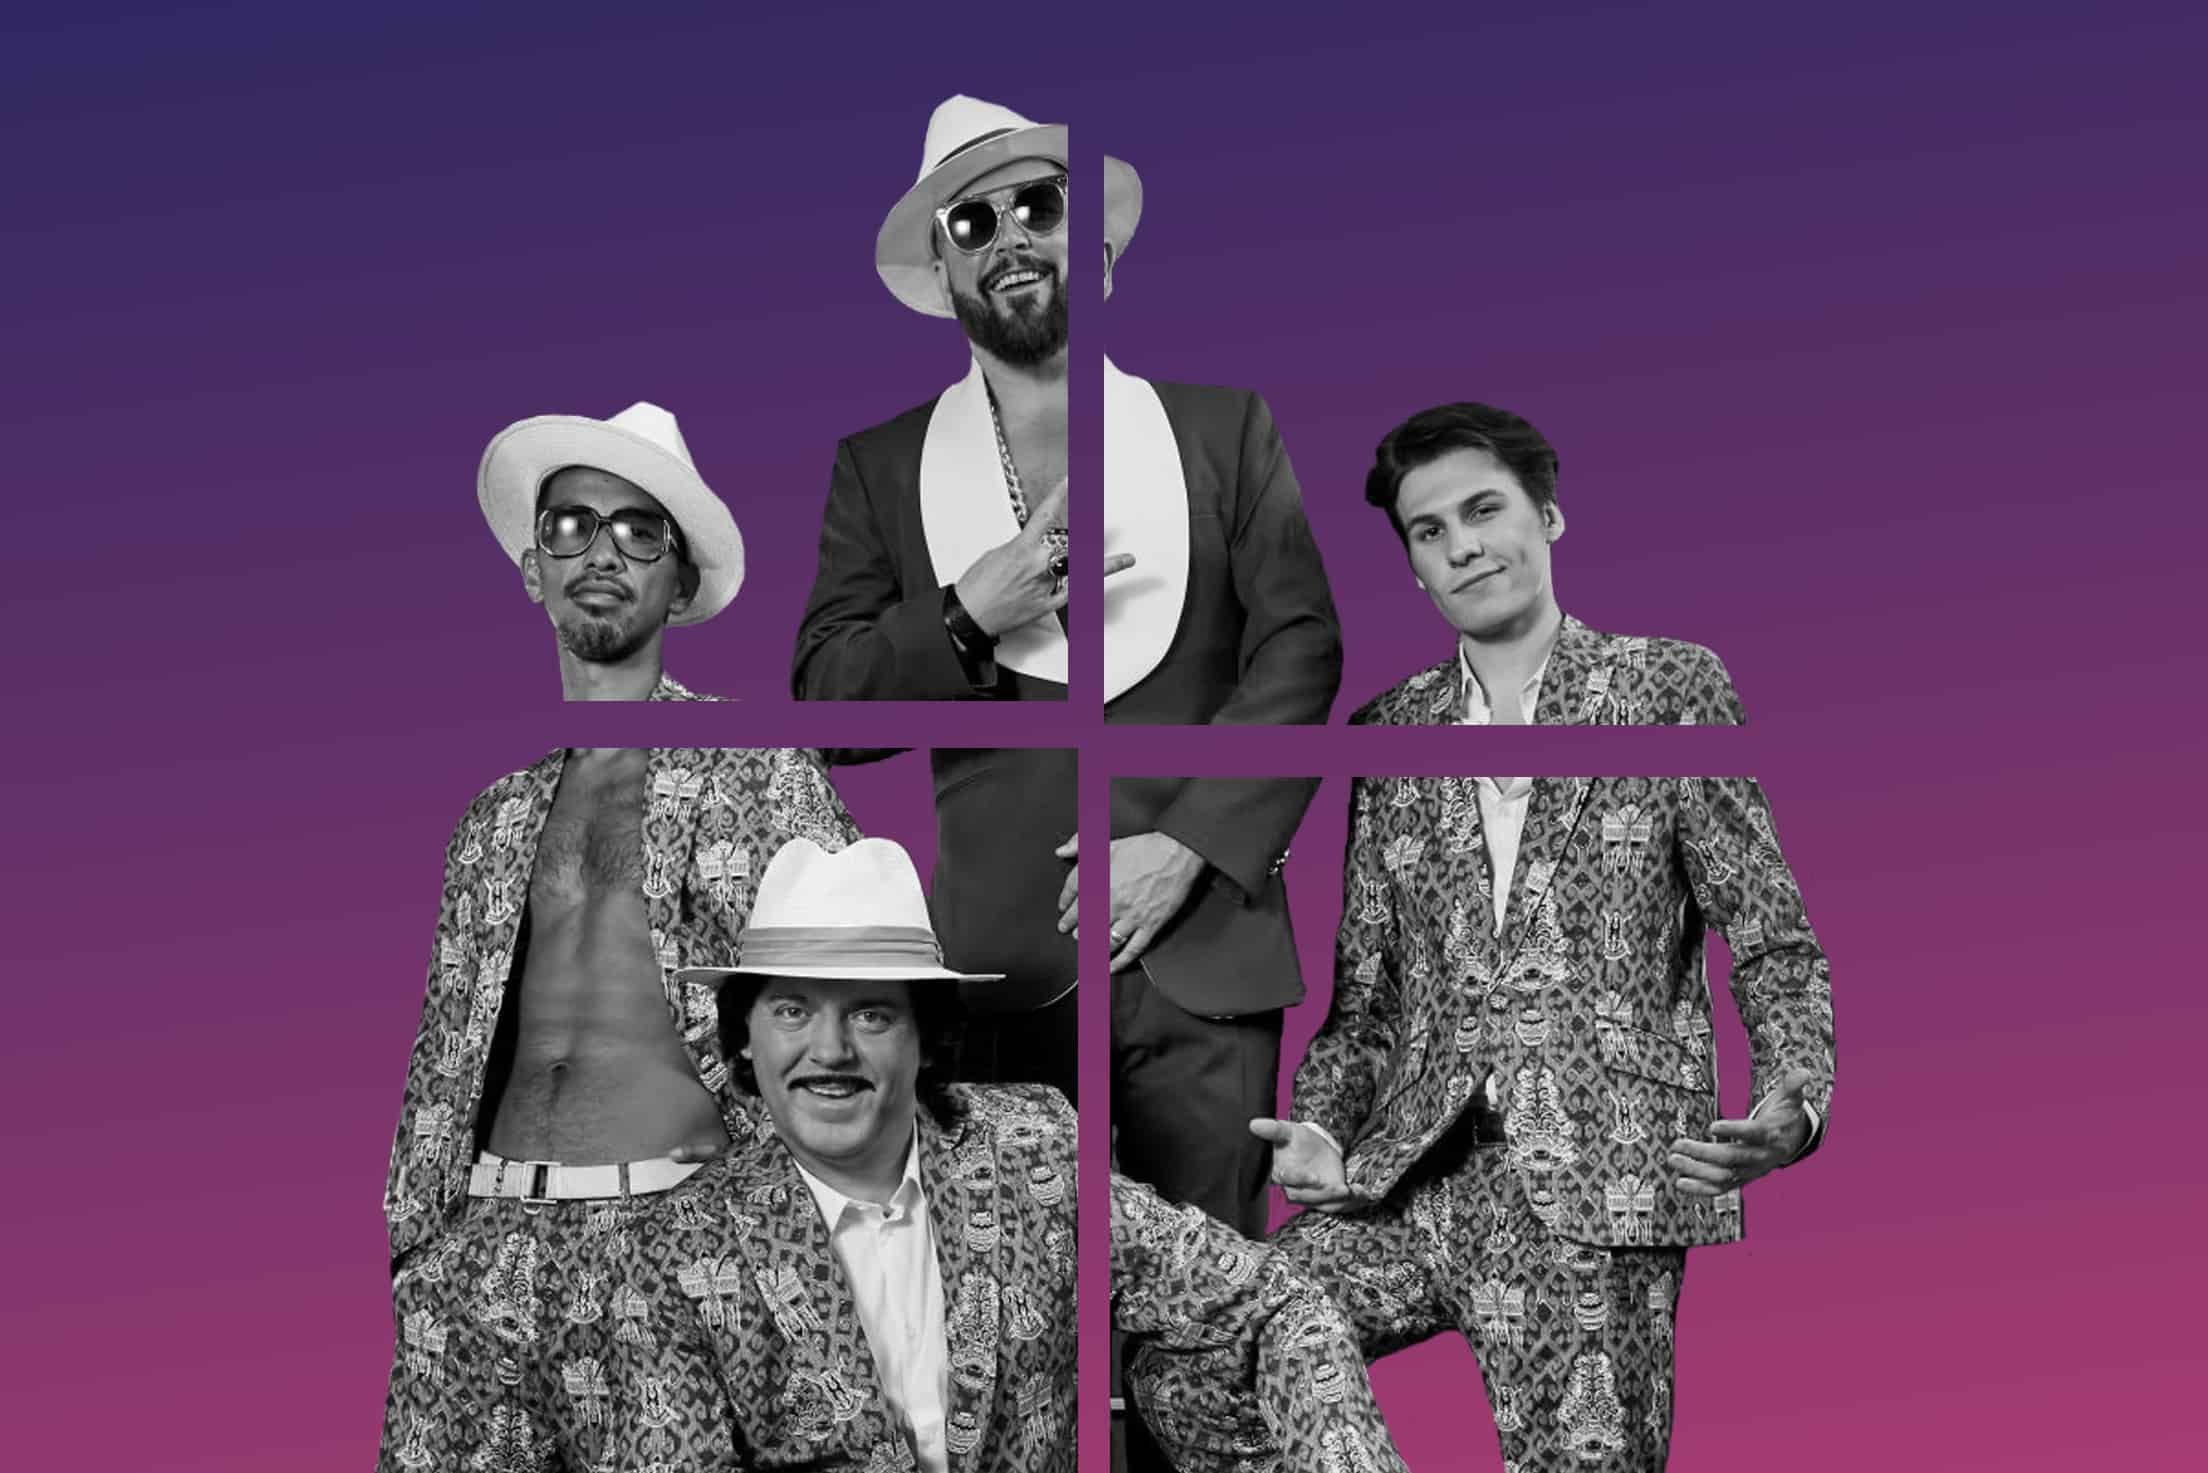 THE CUBAN BROTHERS – IMPECCABLE TASTE